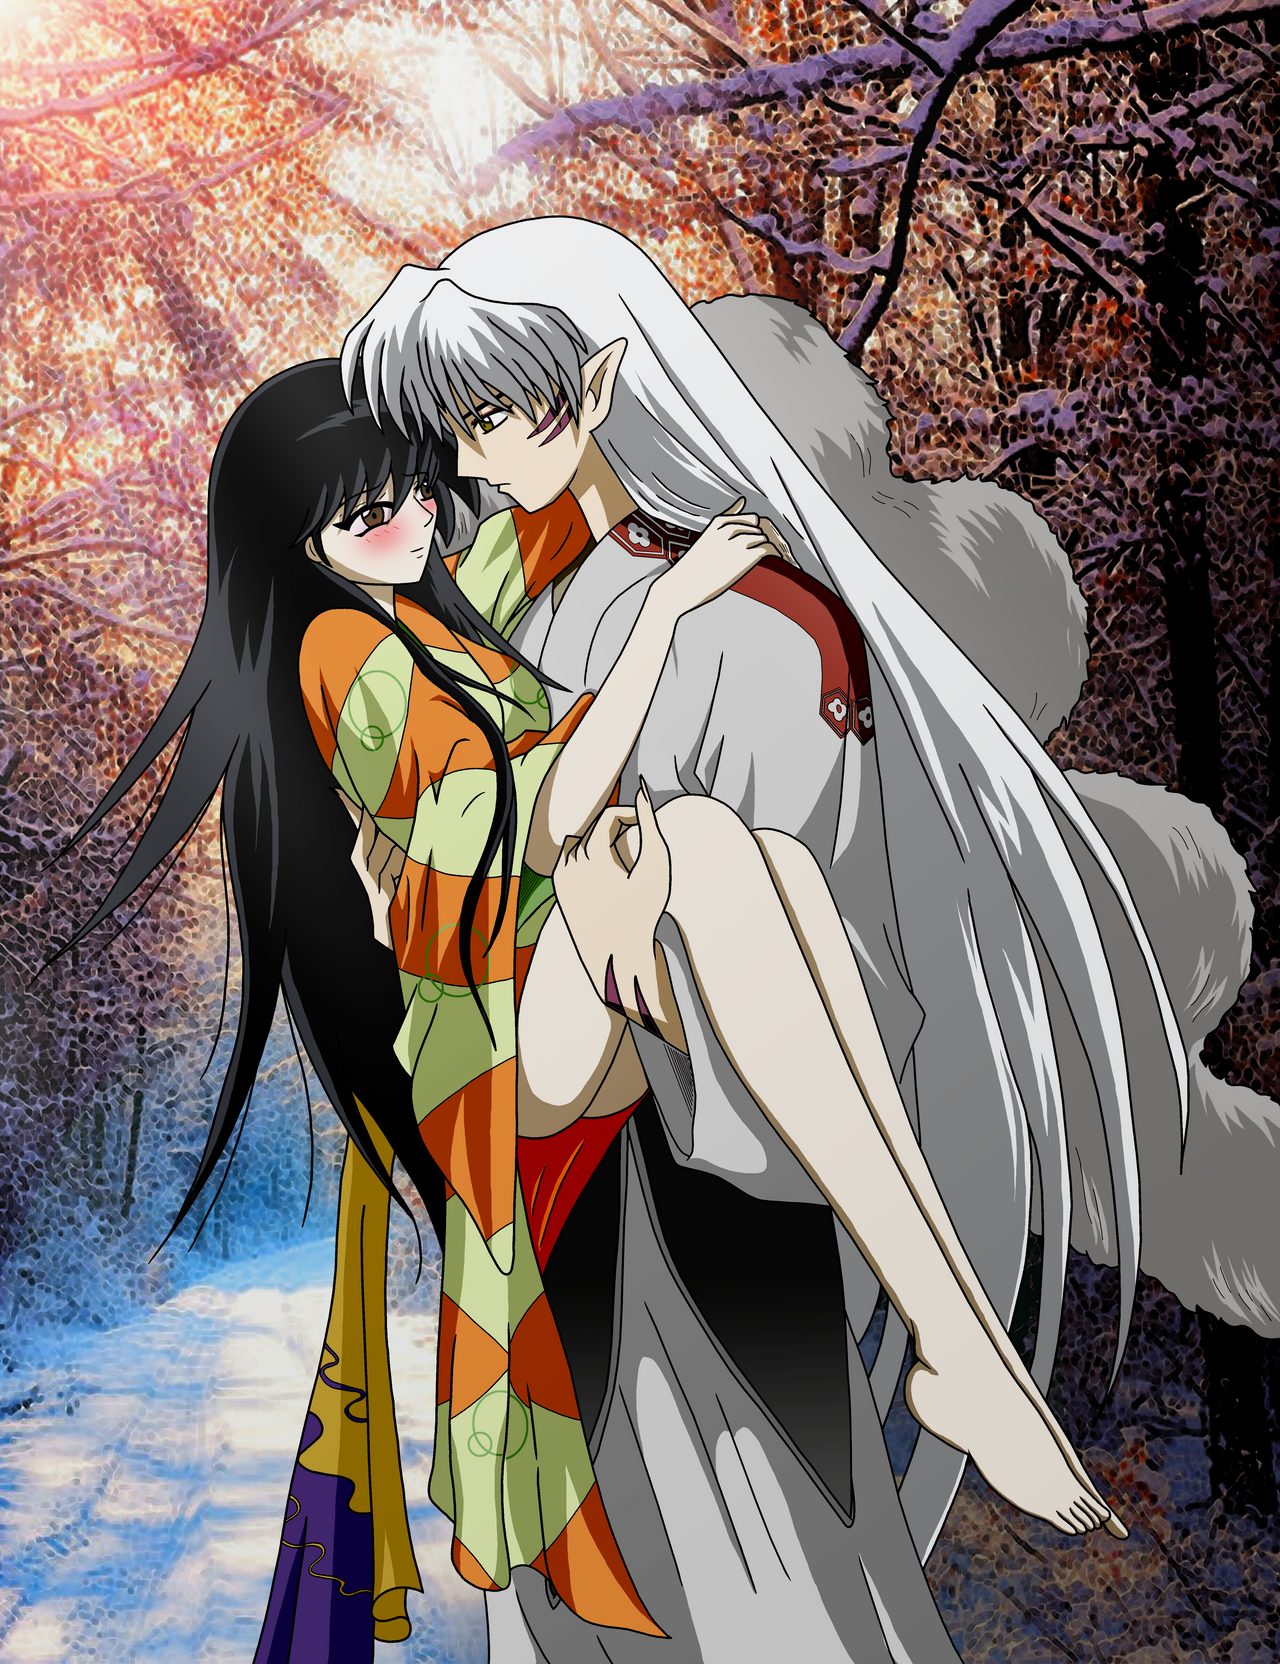 rin and sesshomaru ending a relationship